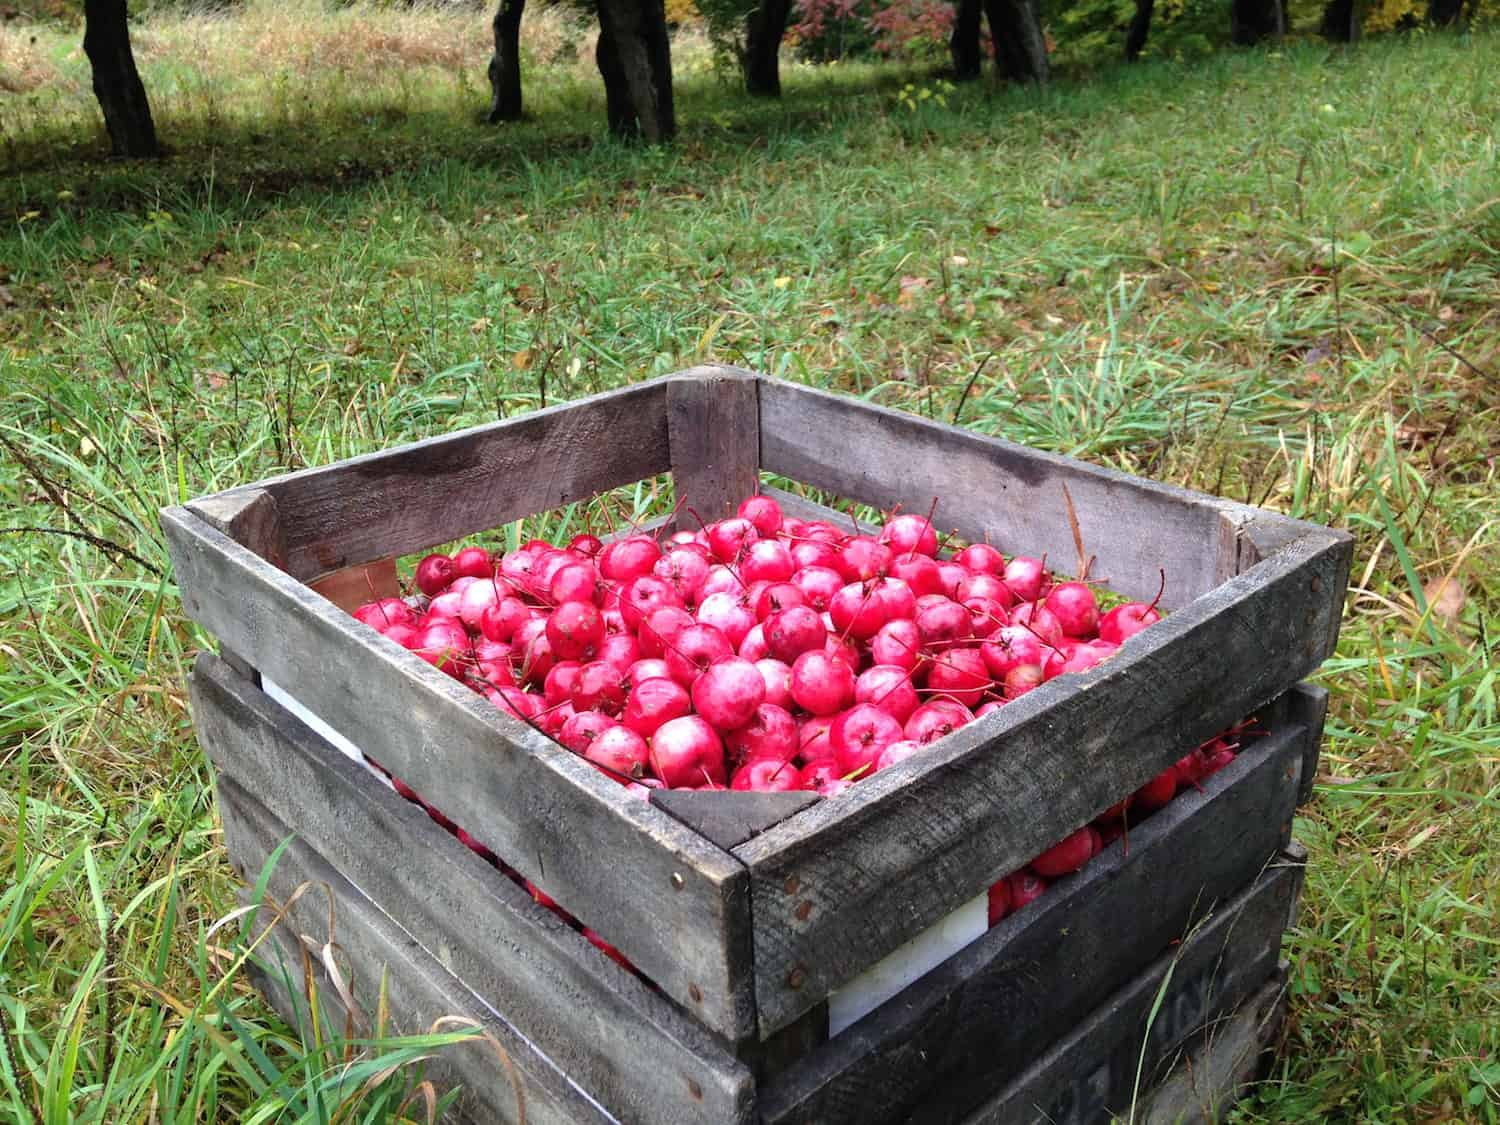 crab-apples-in-a-crate-at-eves-cidery